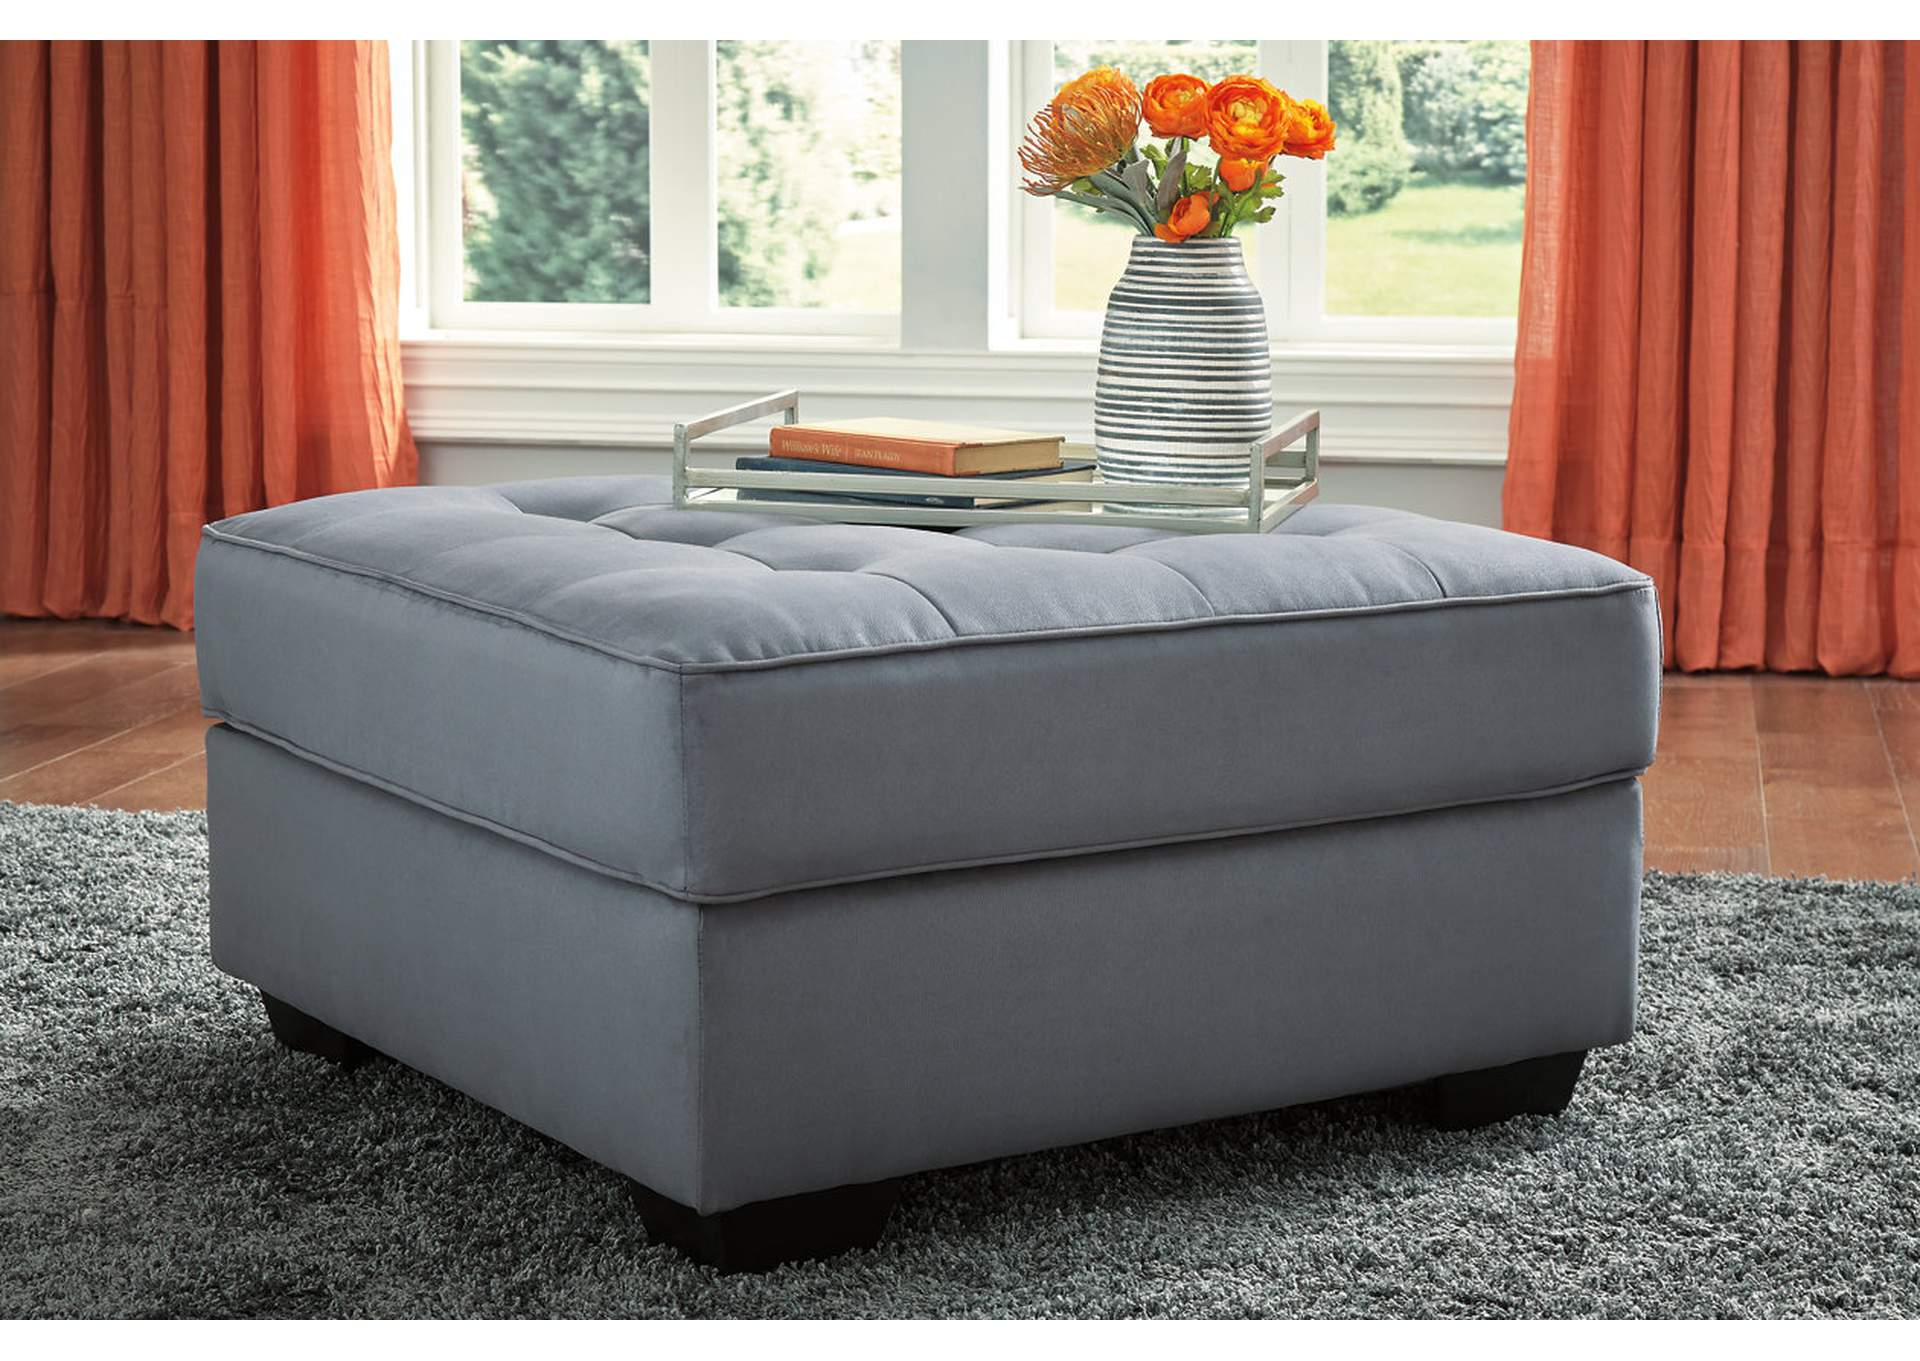 Filone Steel Oversized Accent Ottoman,Signature Design By Ashley